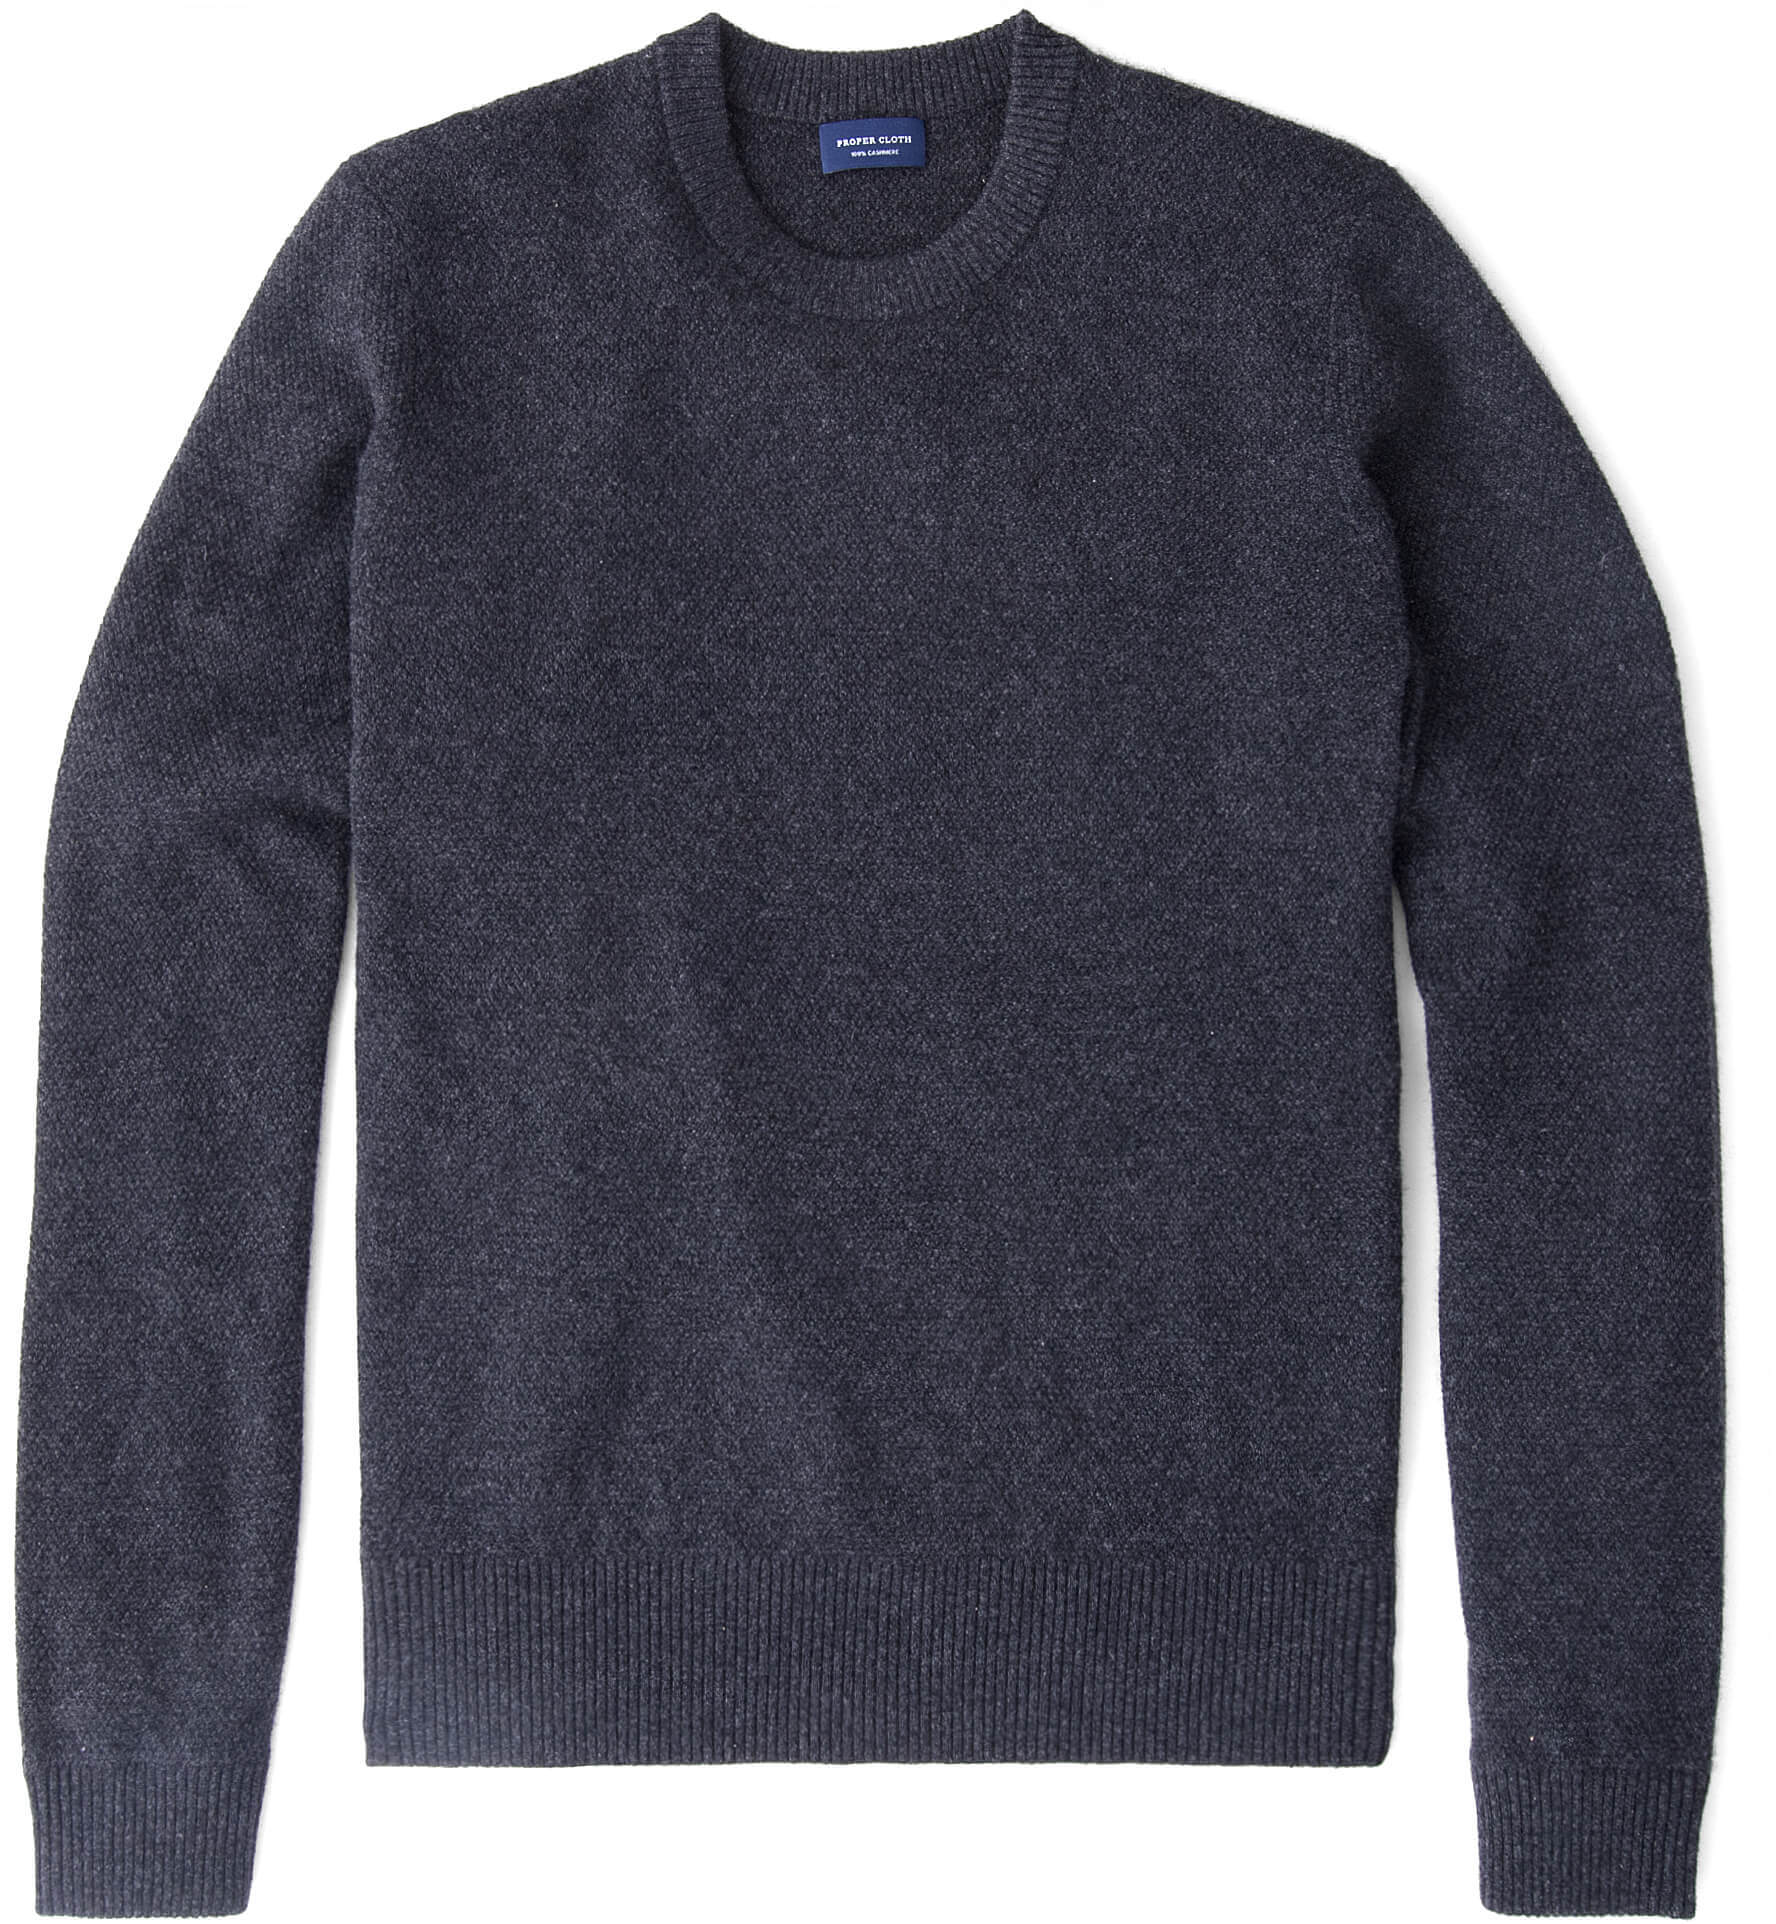 Zoom Image of Charcoal Cobble Stitch Cashmere Crewneck Sweater